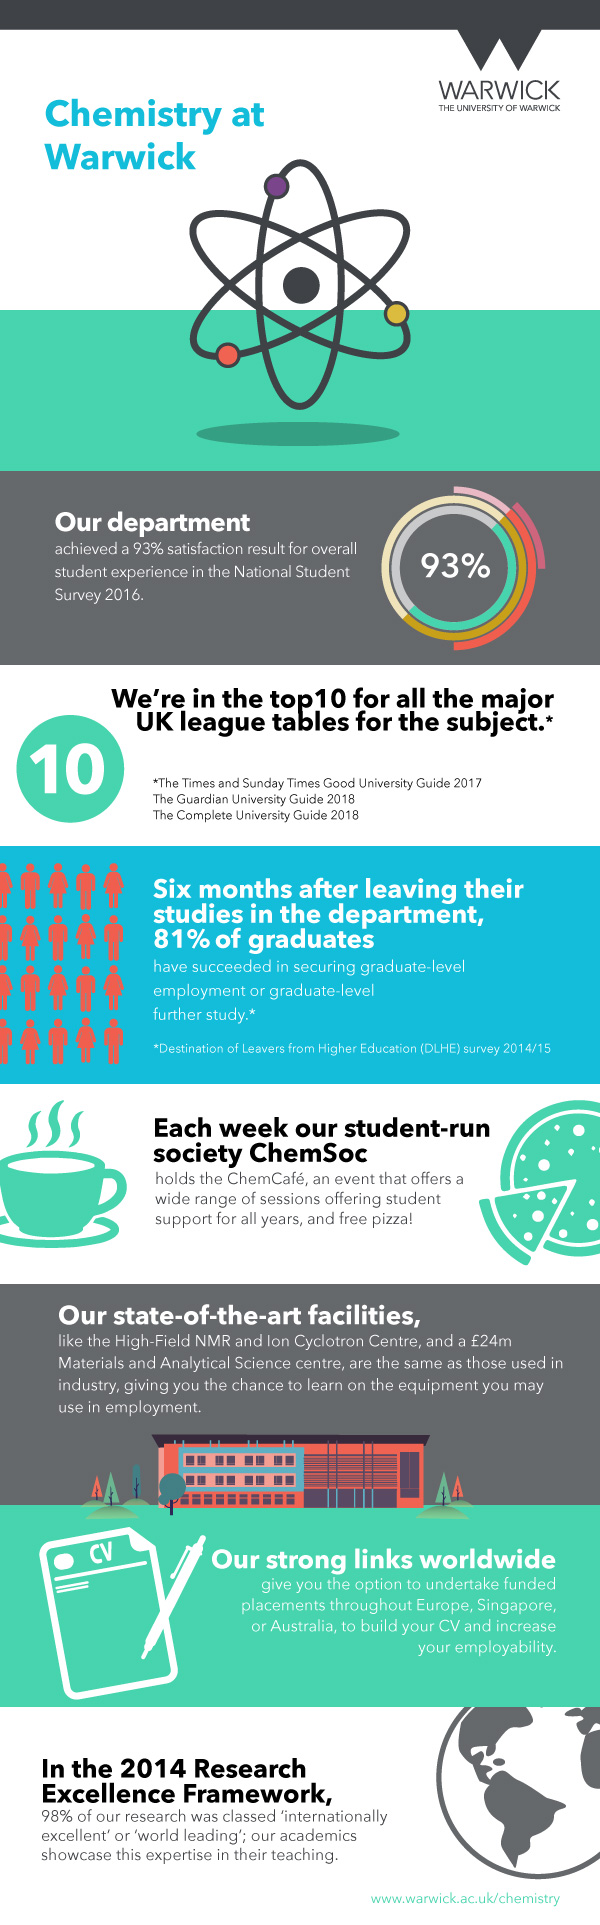 Why Study with us?